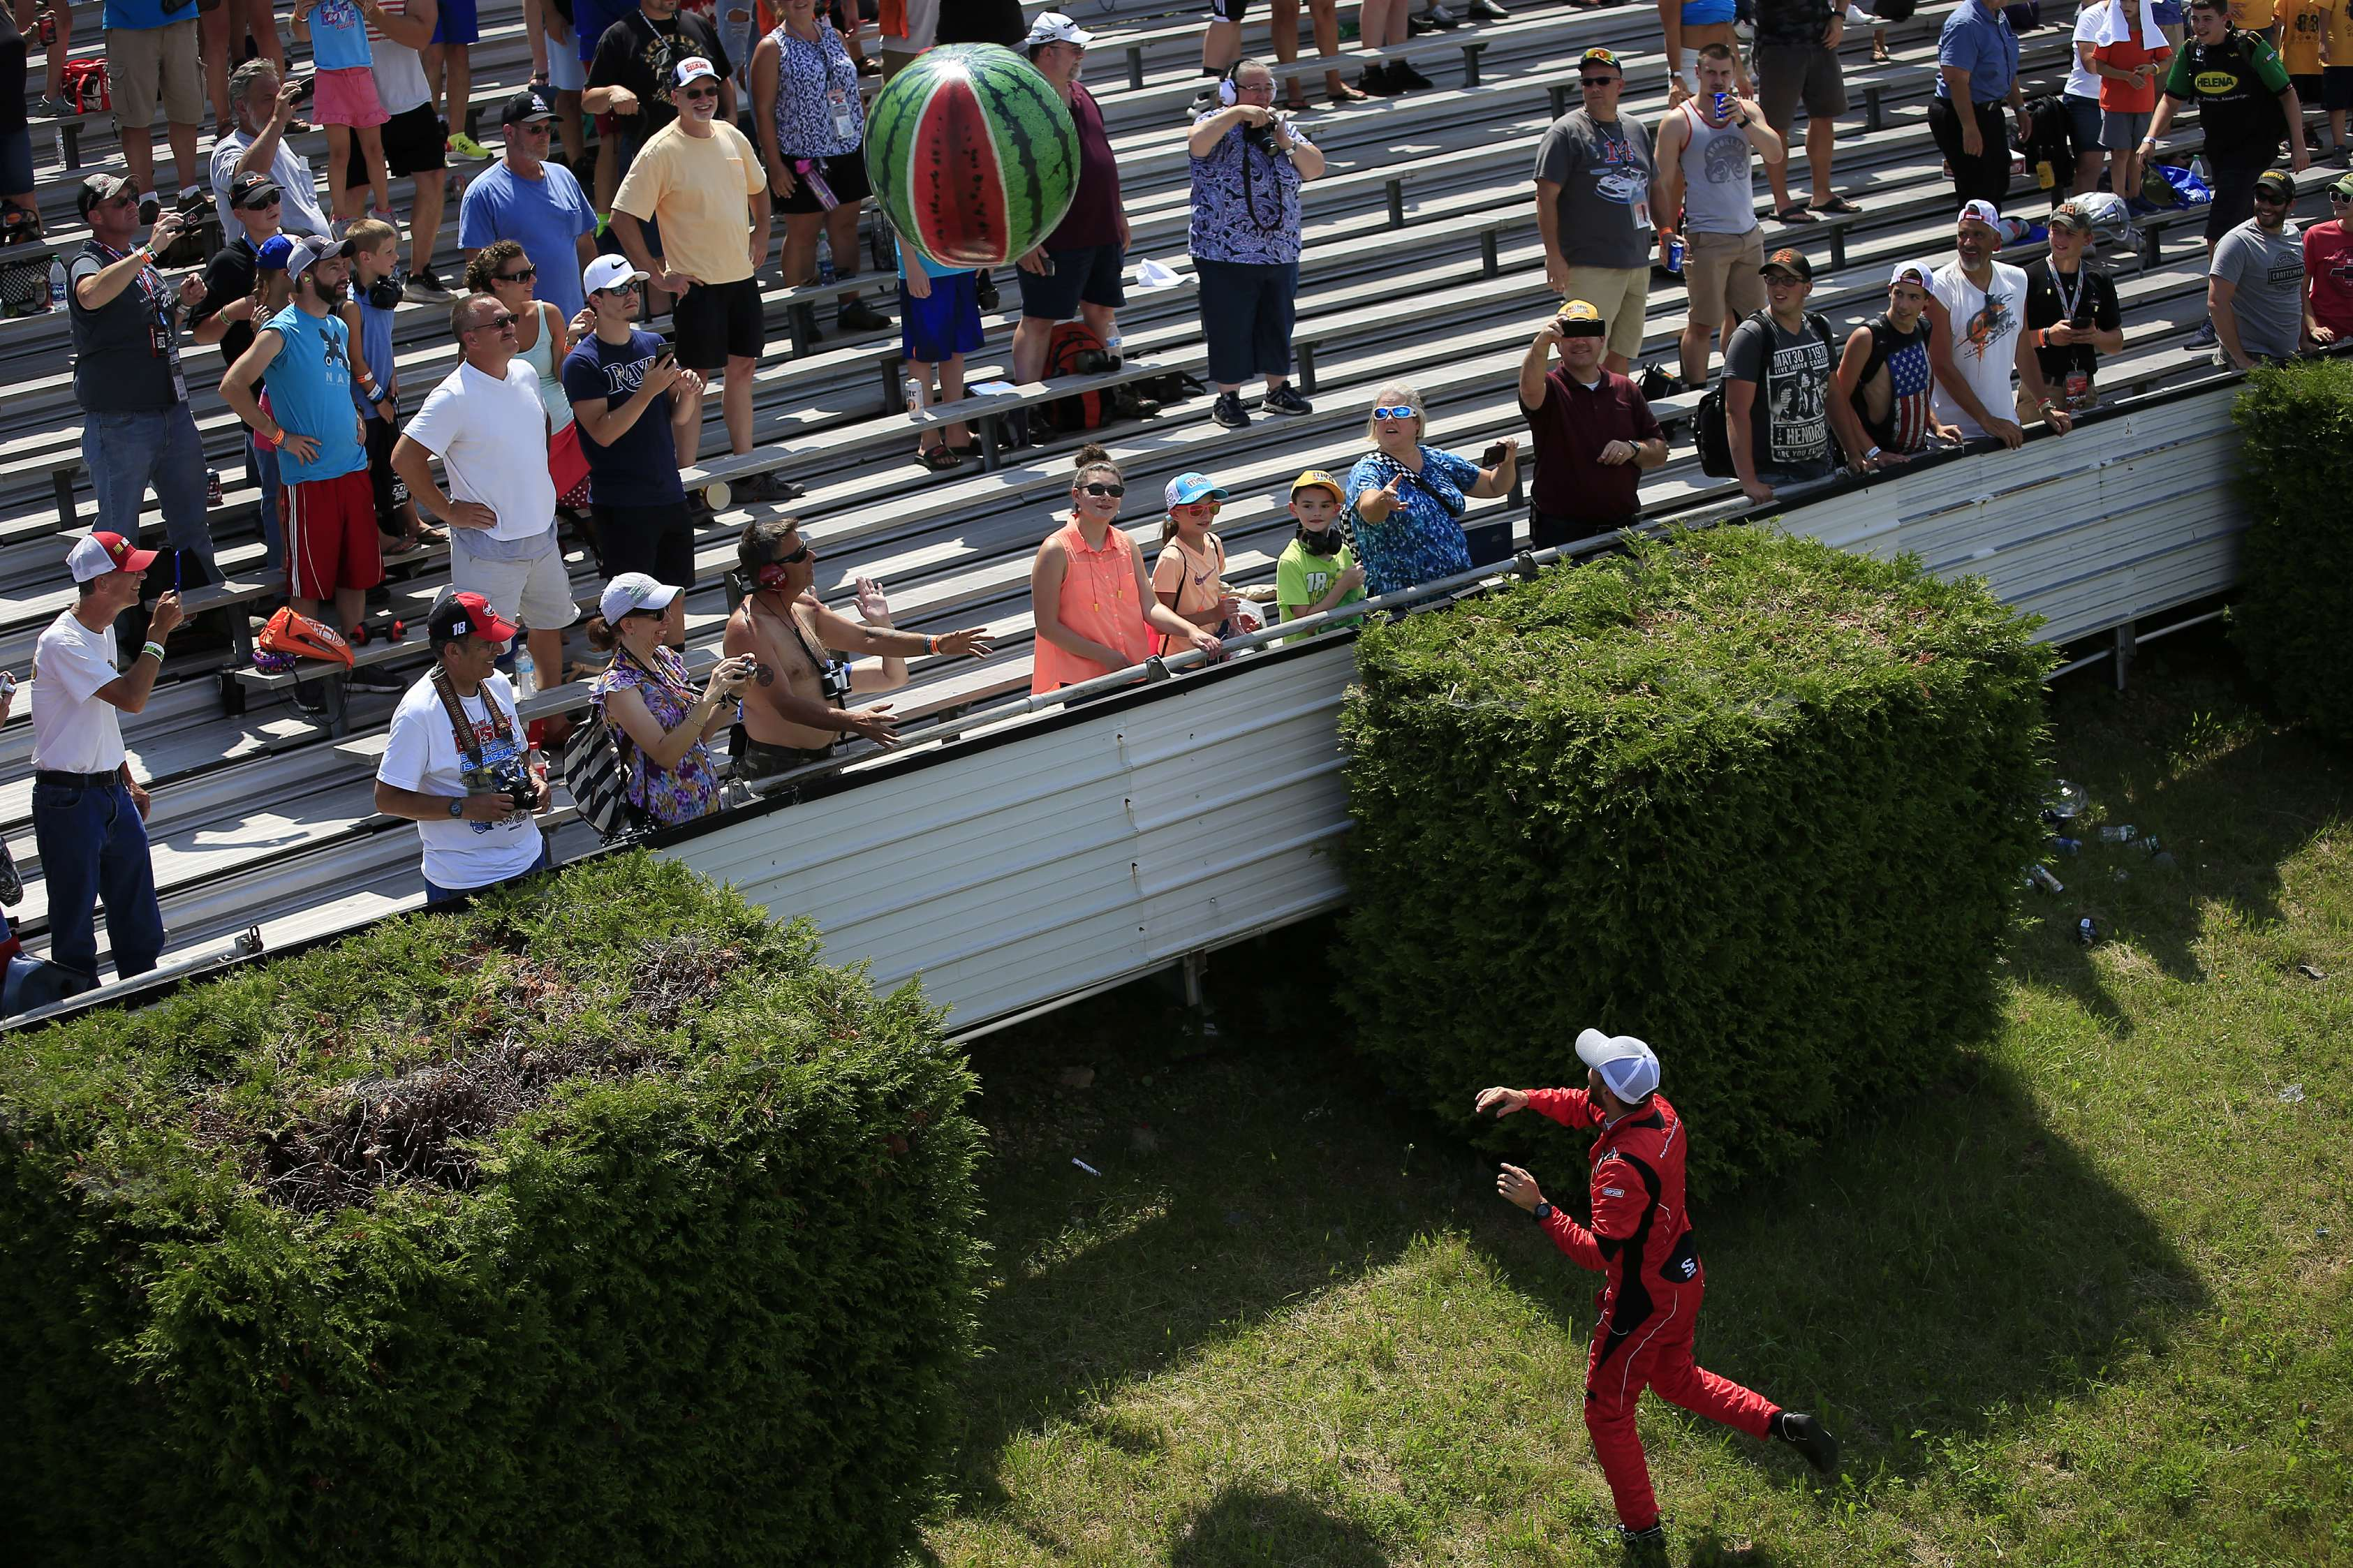 Ross Chastain throws a watermelon beach ball into the crowd at Pocono Raceway